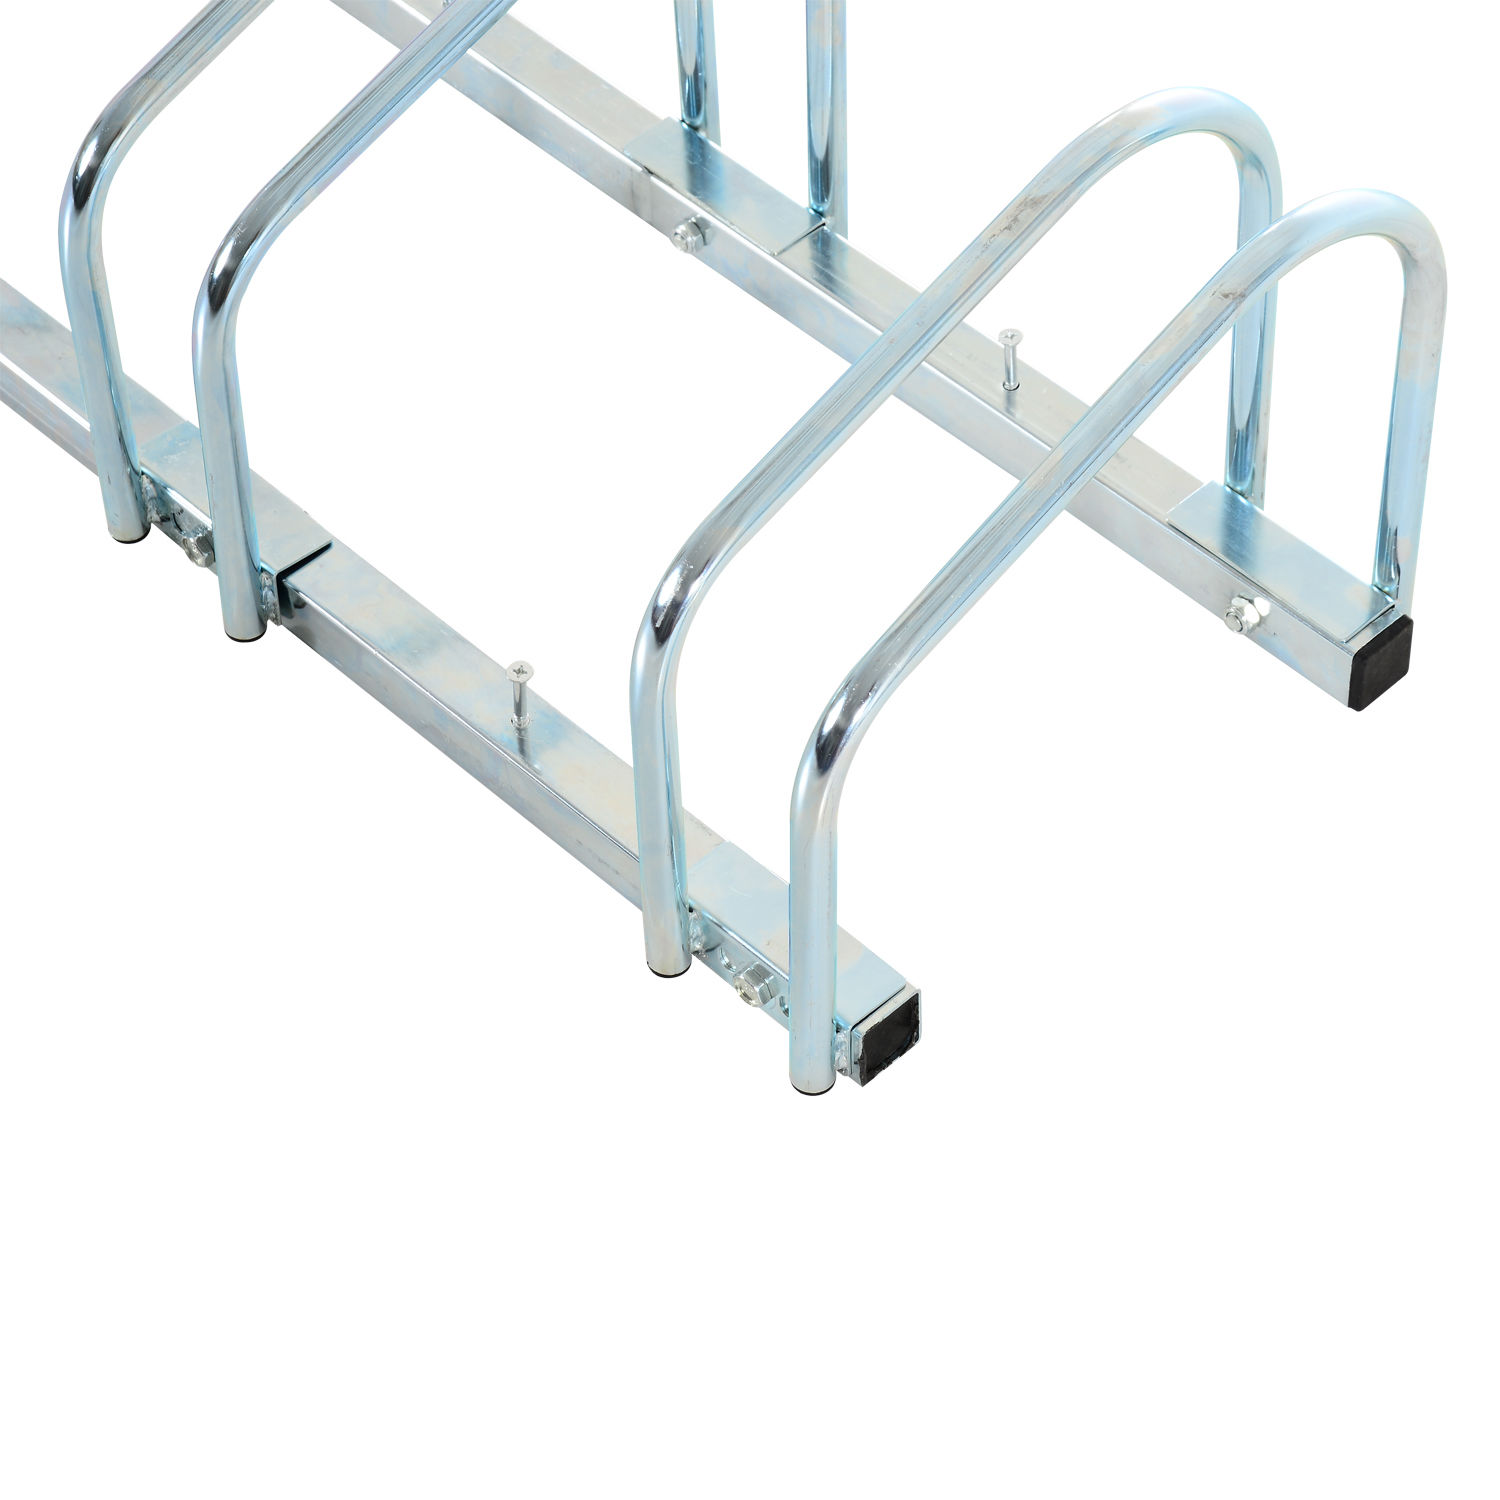 Bicycle-Bike-Parking-Cycle-Floor-Rack-Stand-Storage-Mount-Holder-Steel-Pipe miniatura 36